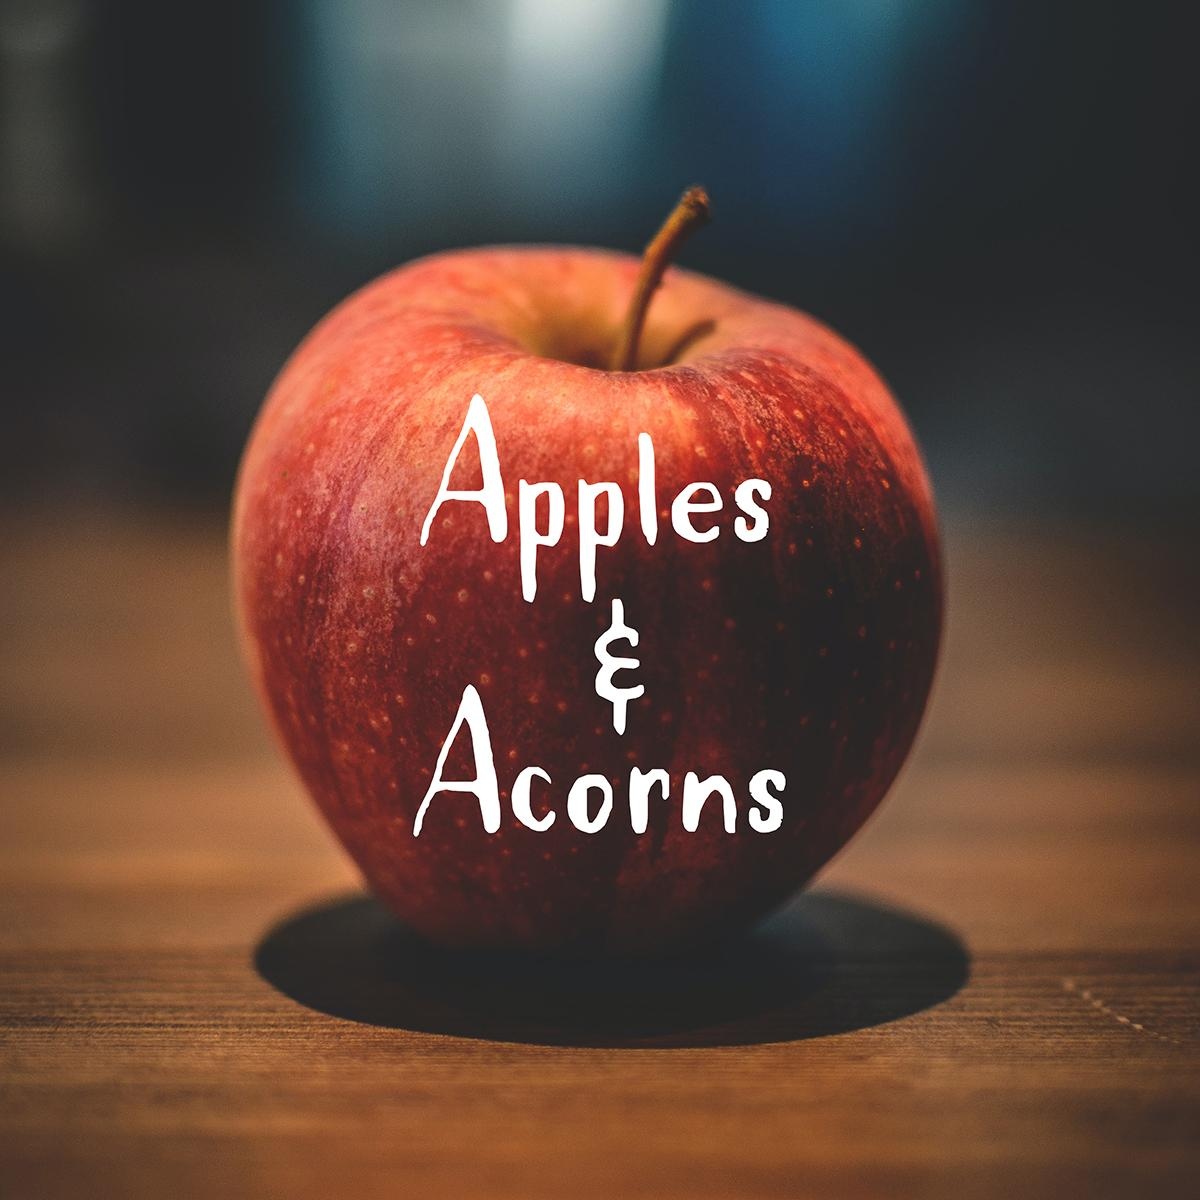 Apples & Acorns